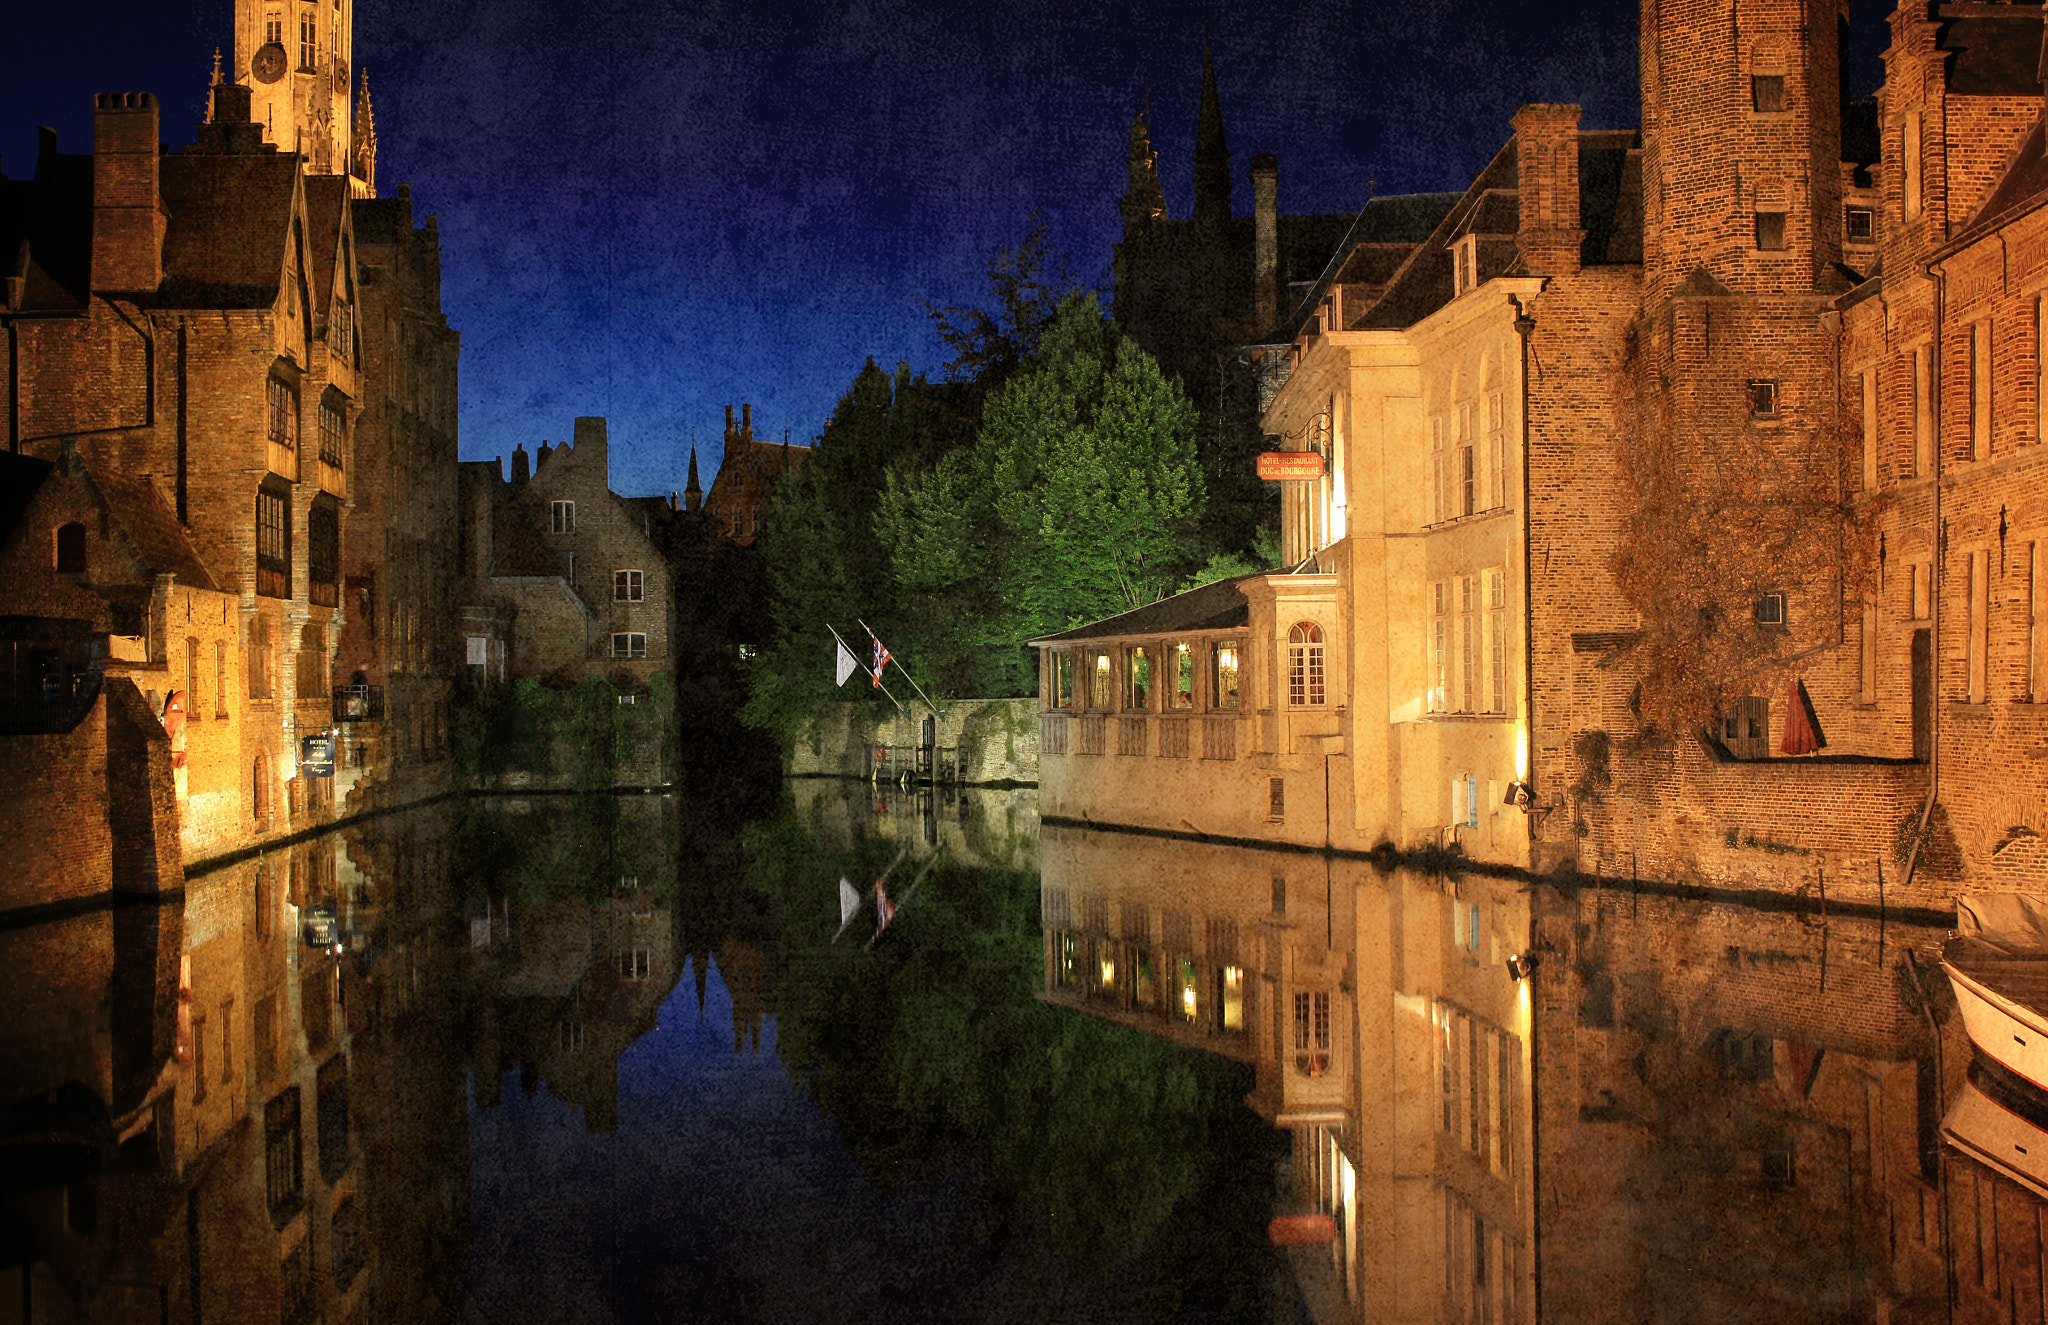 Photograph night in Brugge by Katerina Bim on 500px